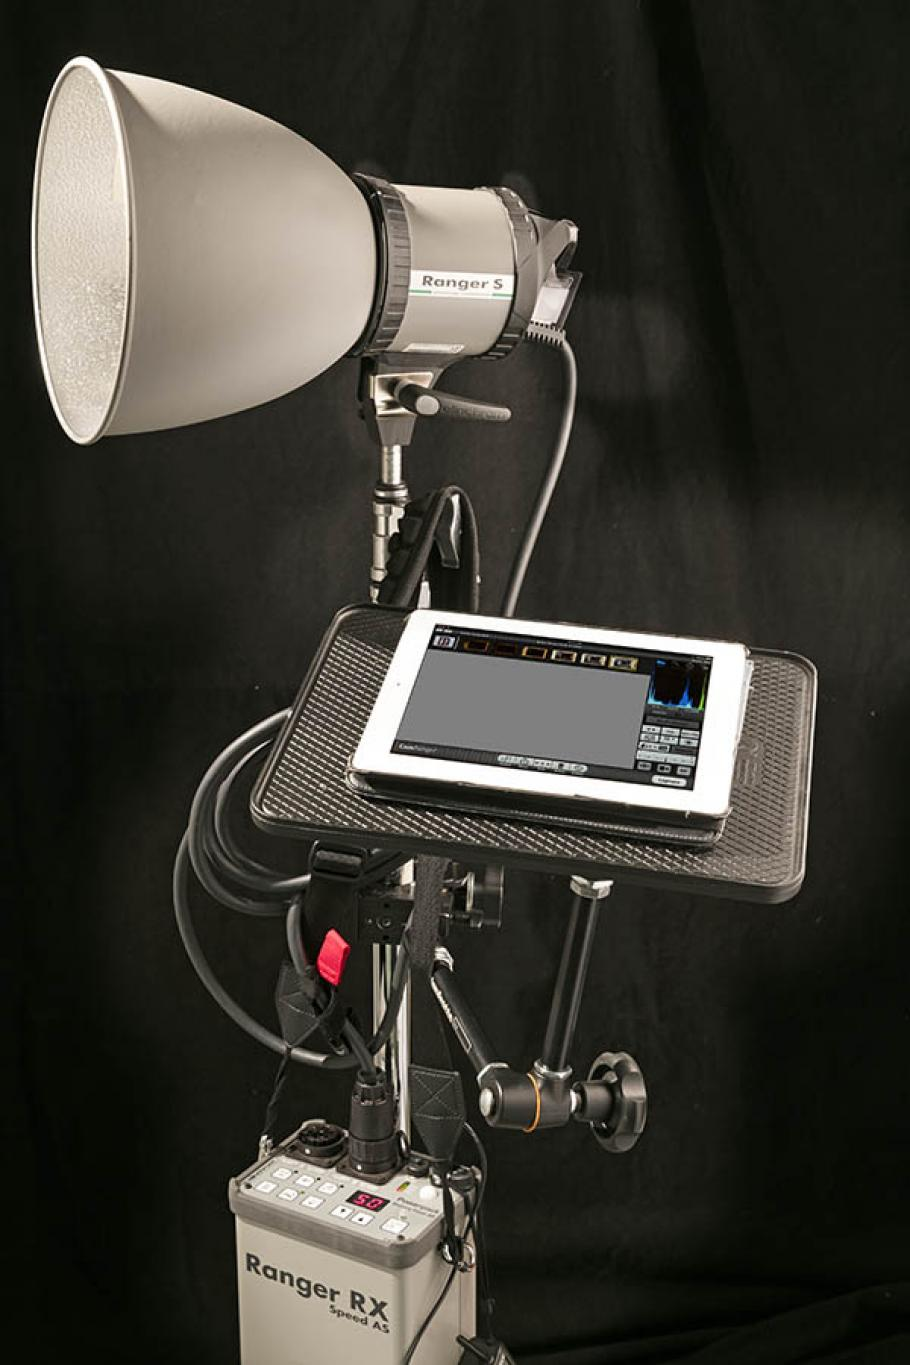 Photograph of photography equipment.